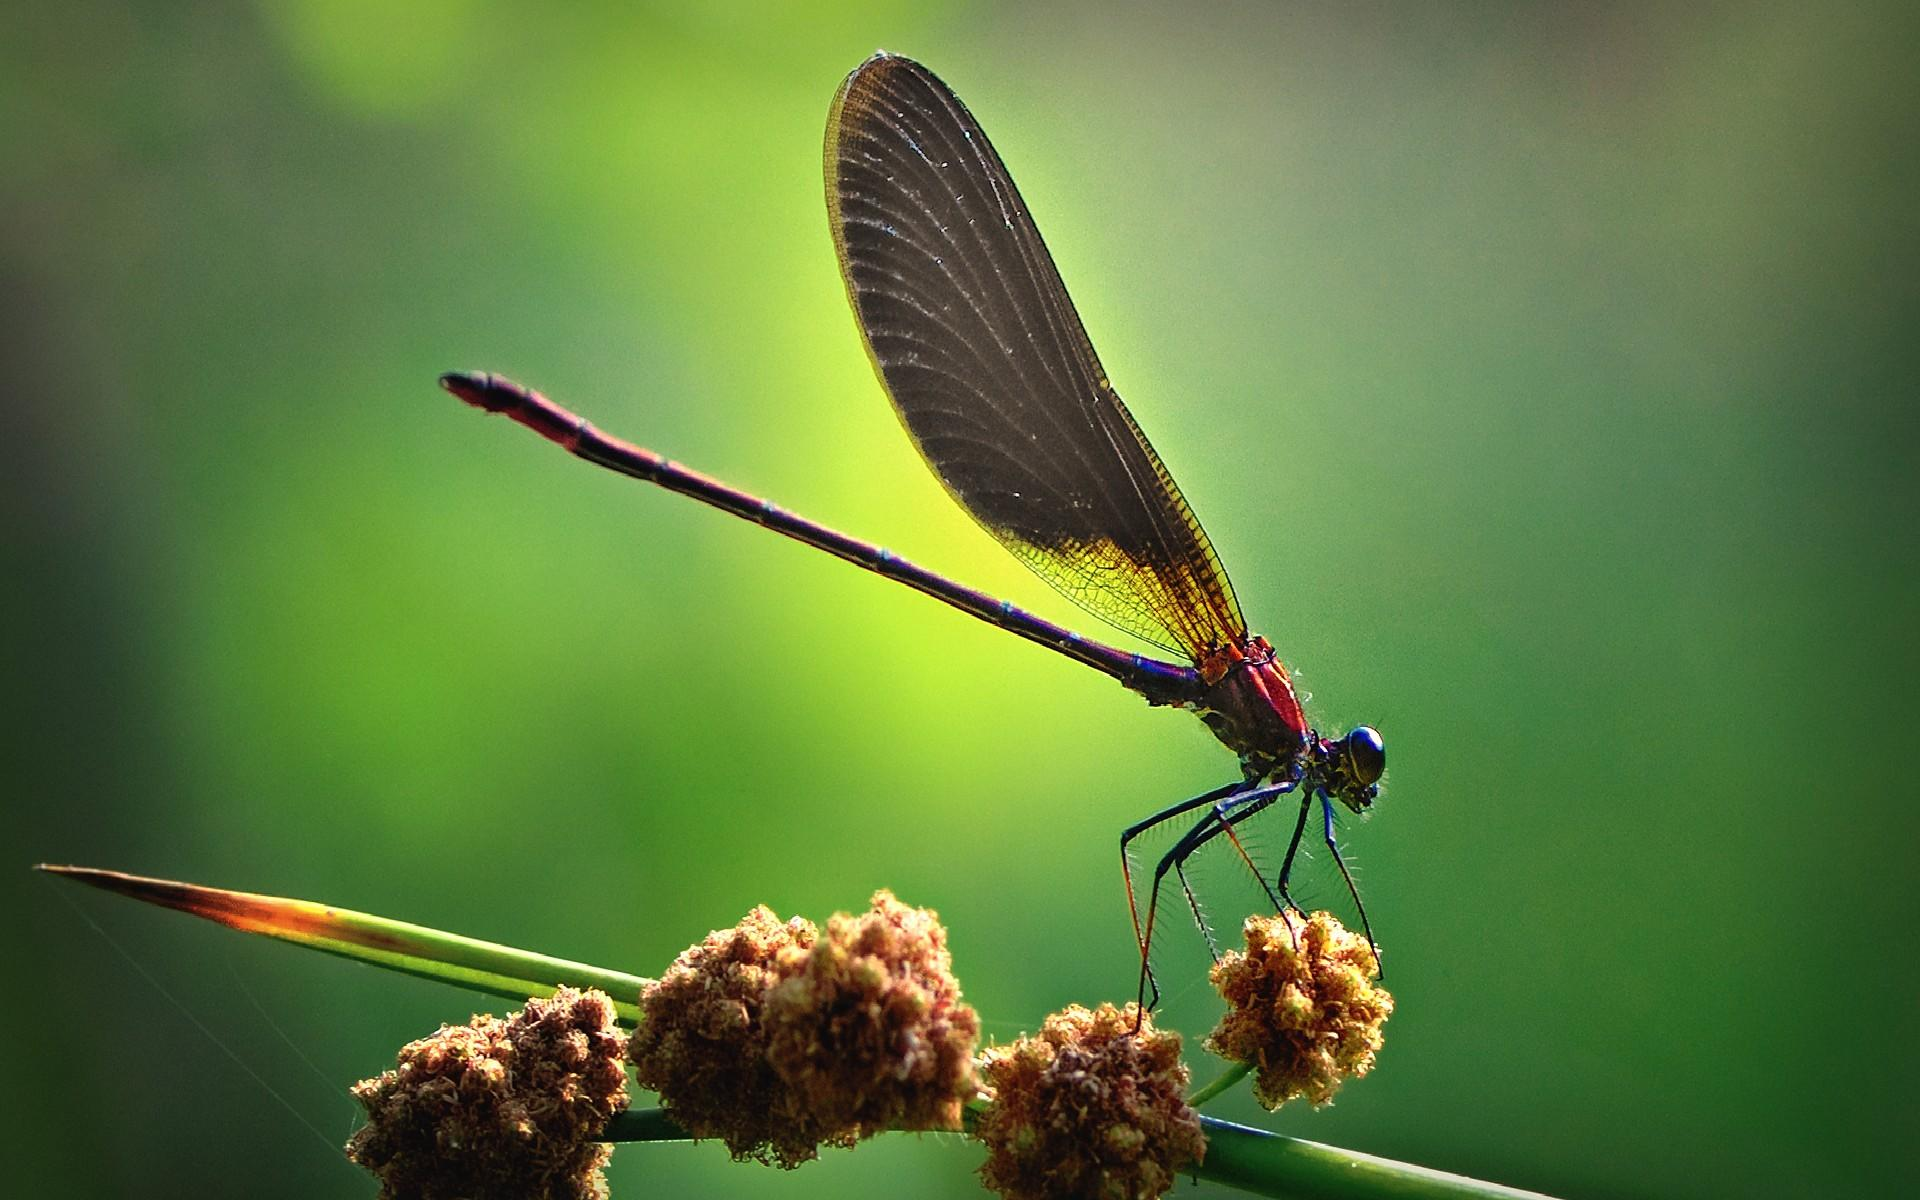 Fantastic Dragonfly Wallpaper 39237 1920x1200 px